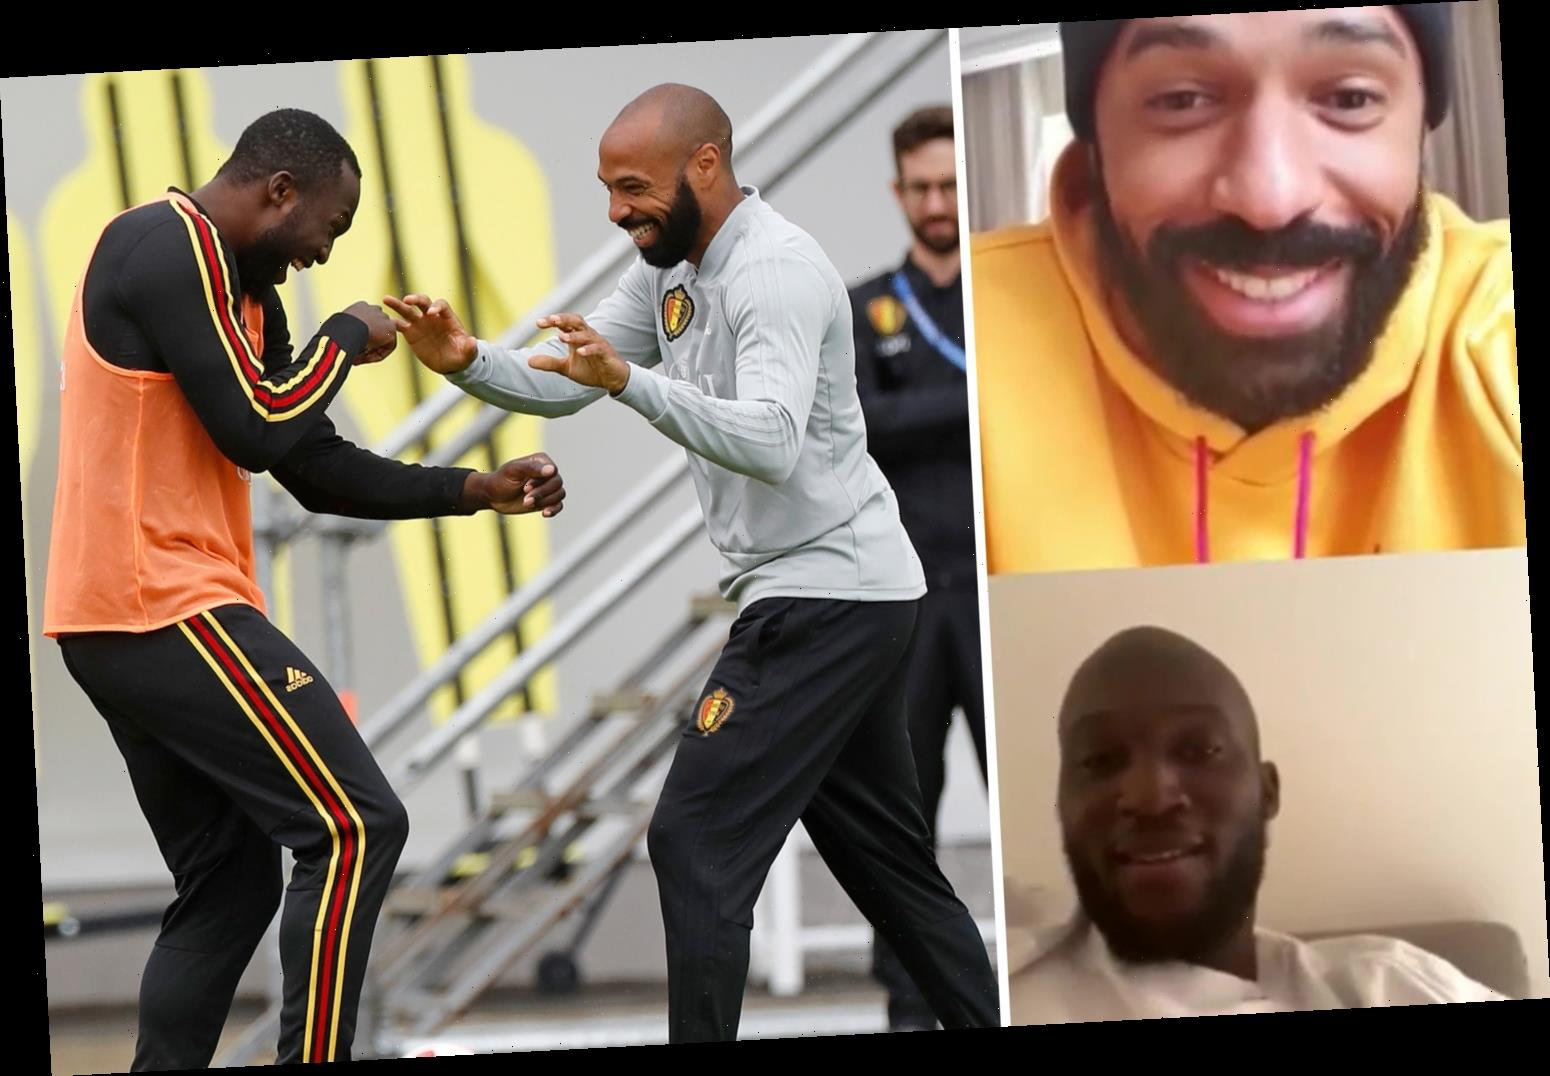 Thierry Henry humiliated Belgium star so badly in training he stormed off pitch, according to Romelu Lukaku – The Sun